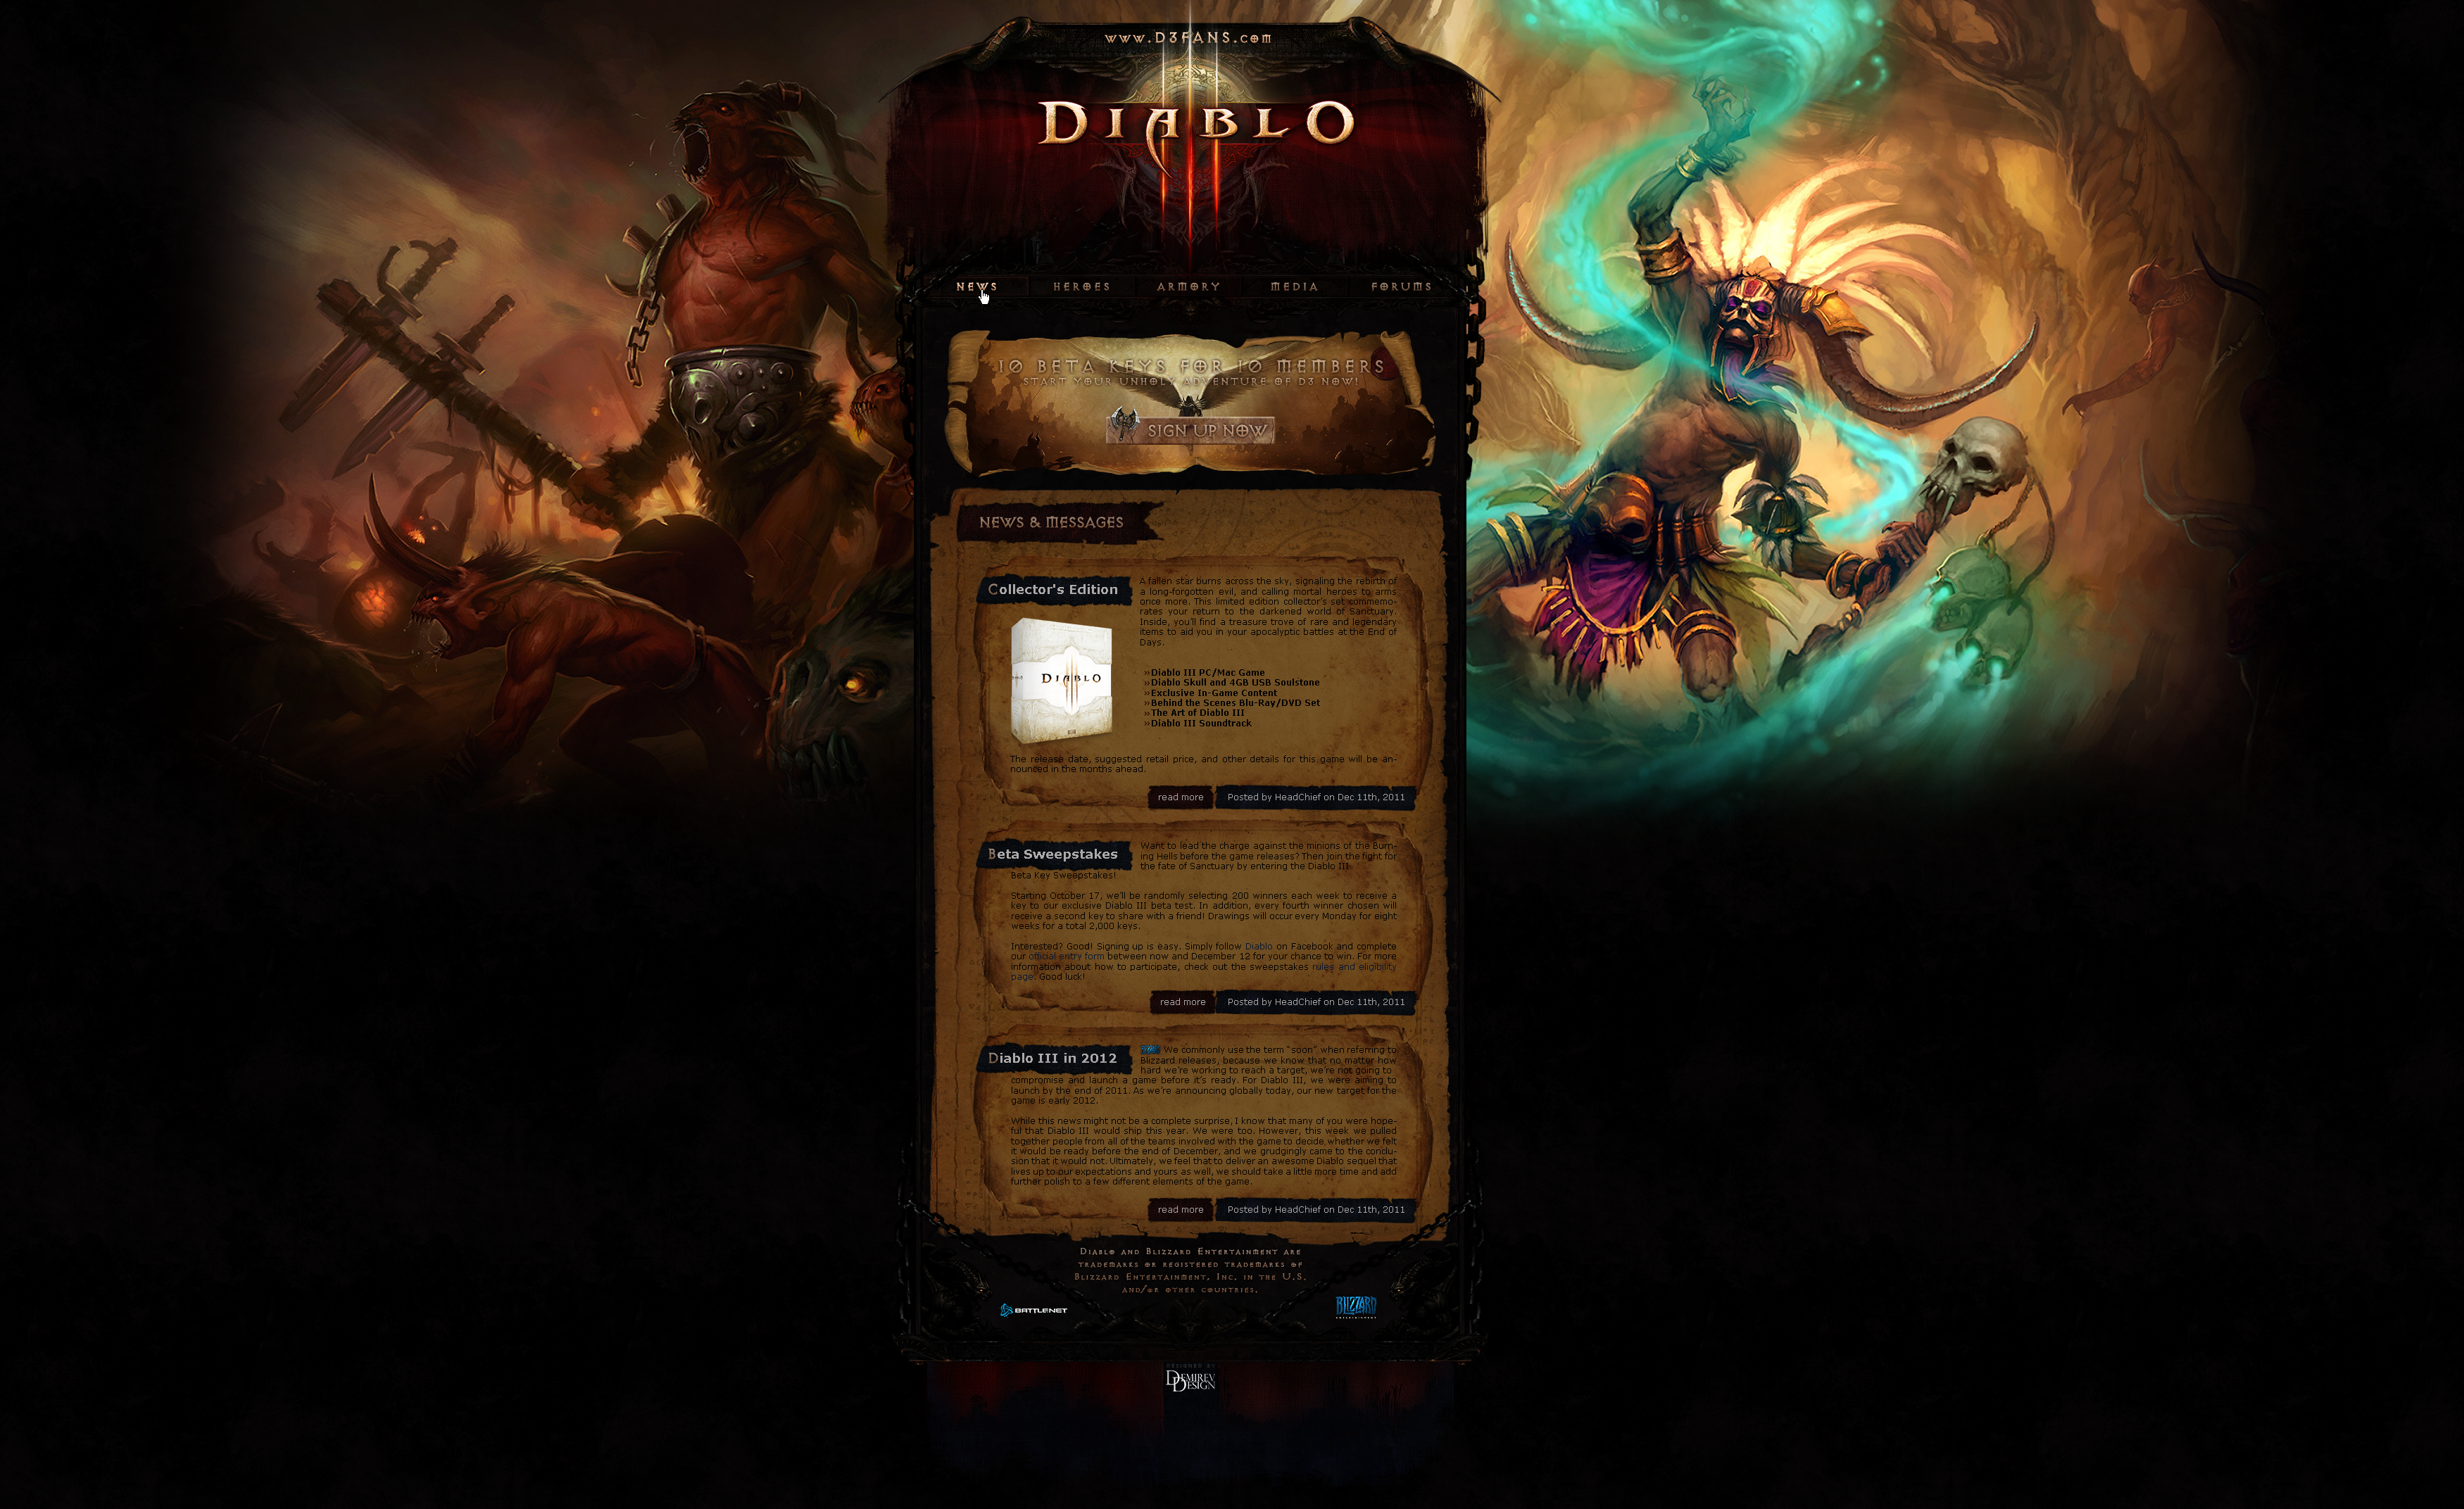 Diablo 3 Fansite Template v2.3 by NicotineLL